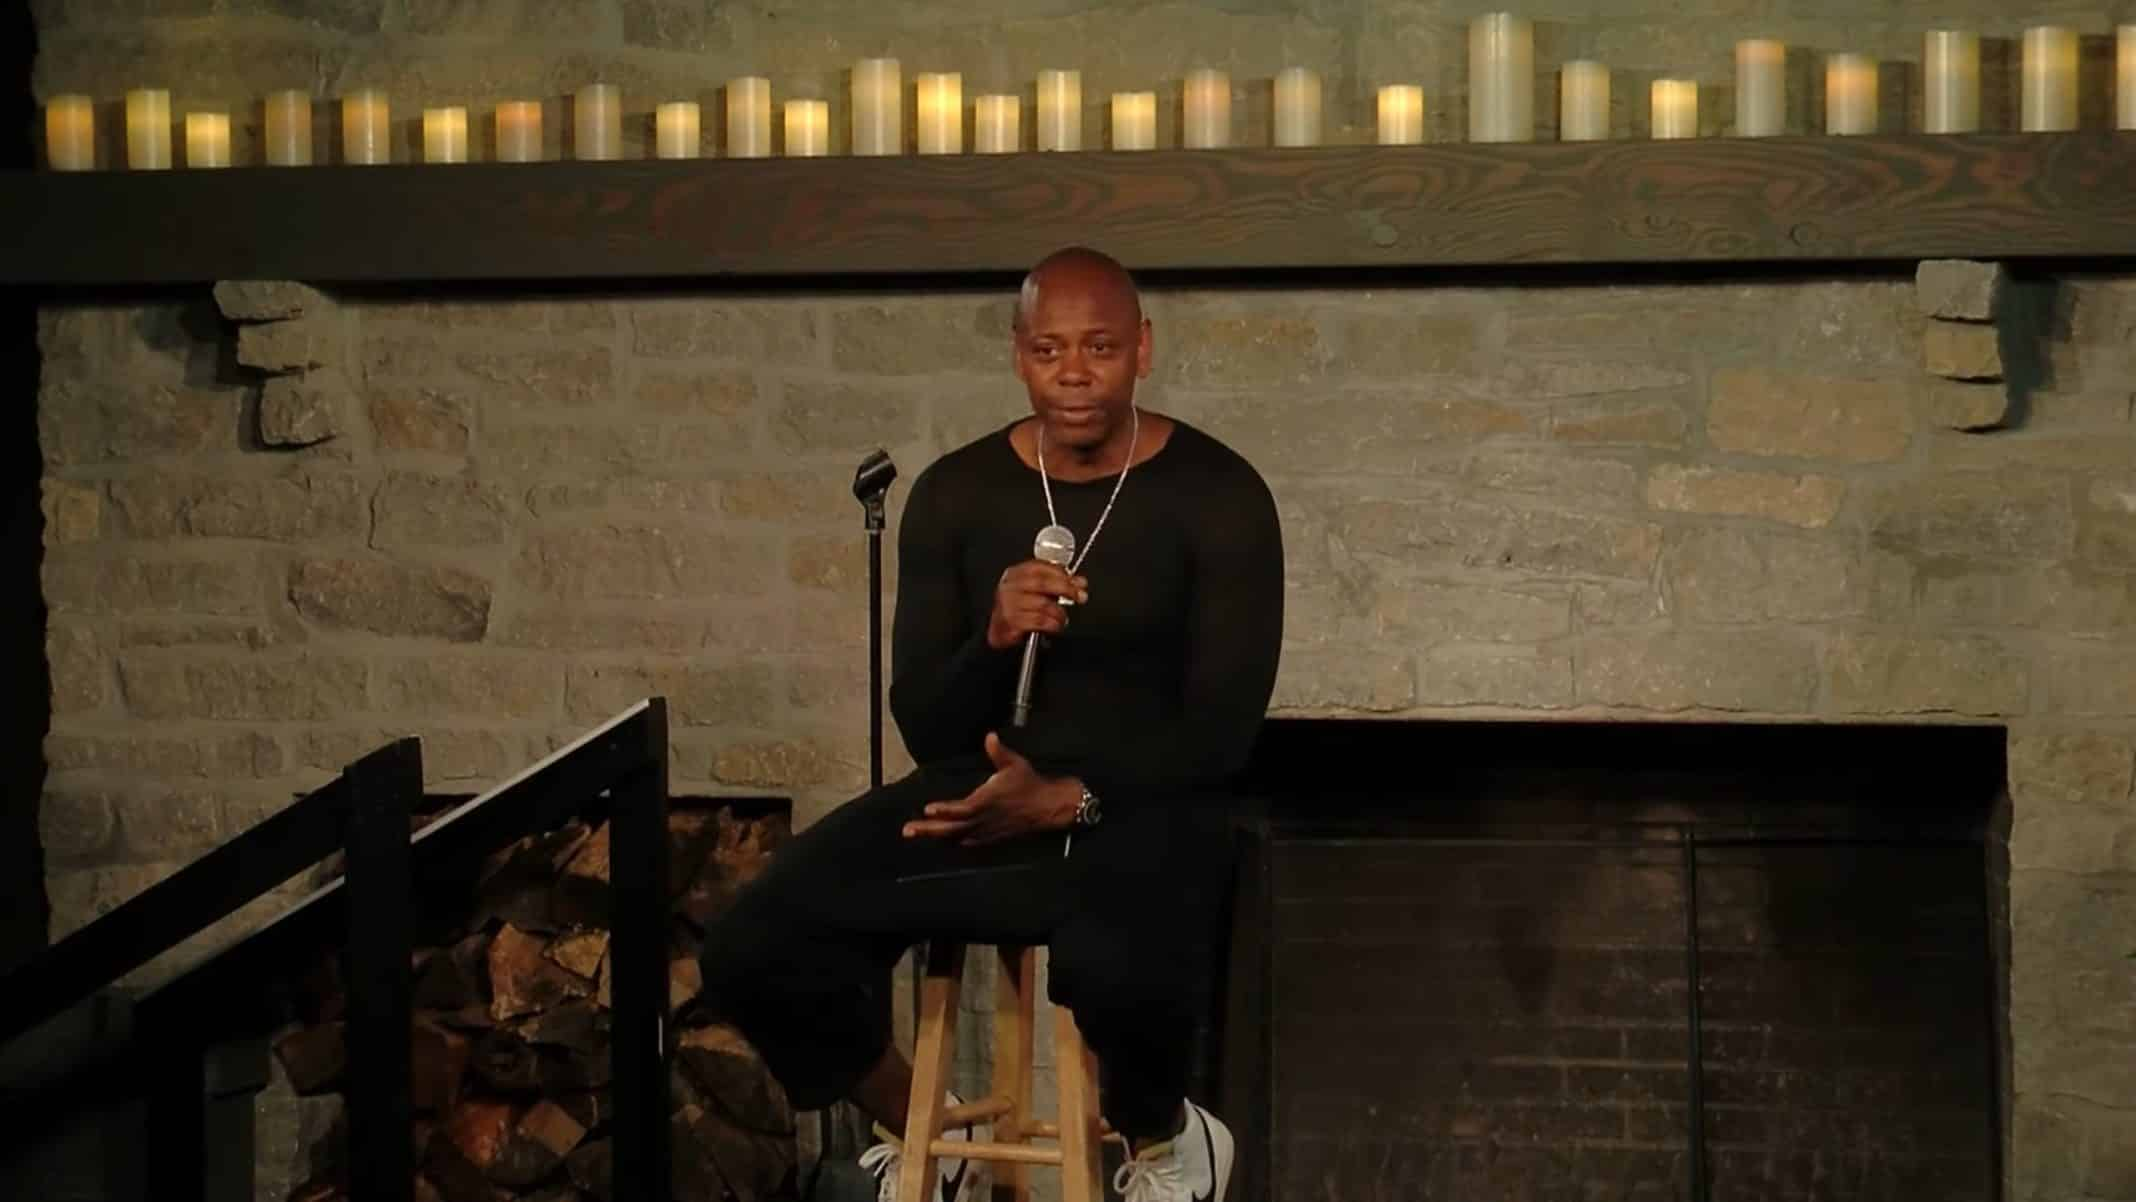 Dave Chappelle sitting on a stool, talking to an audience.